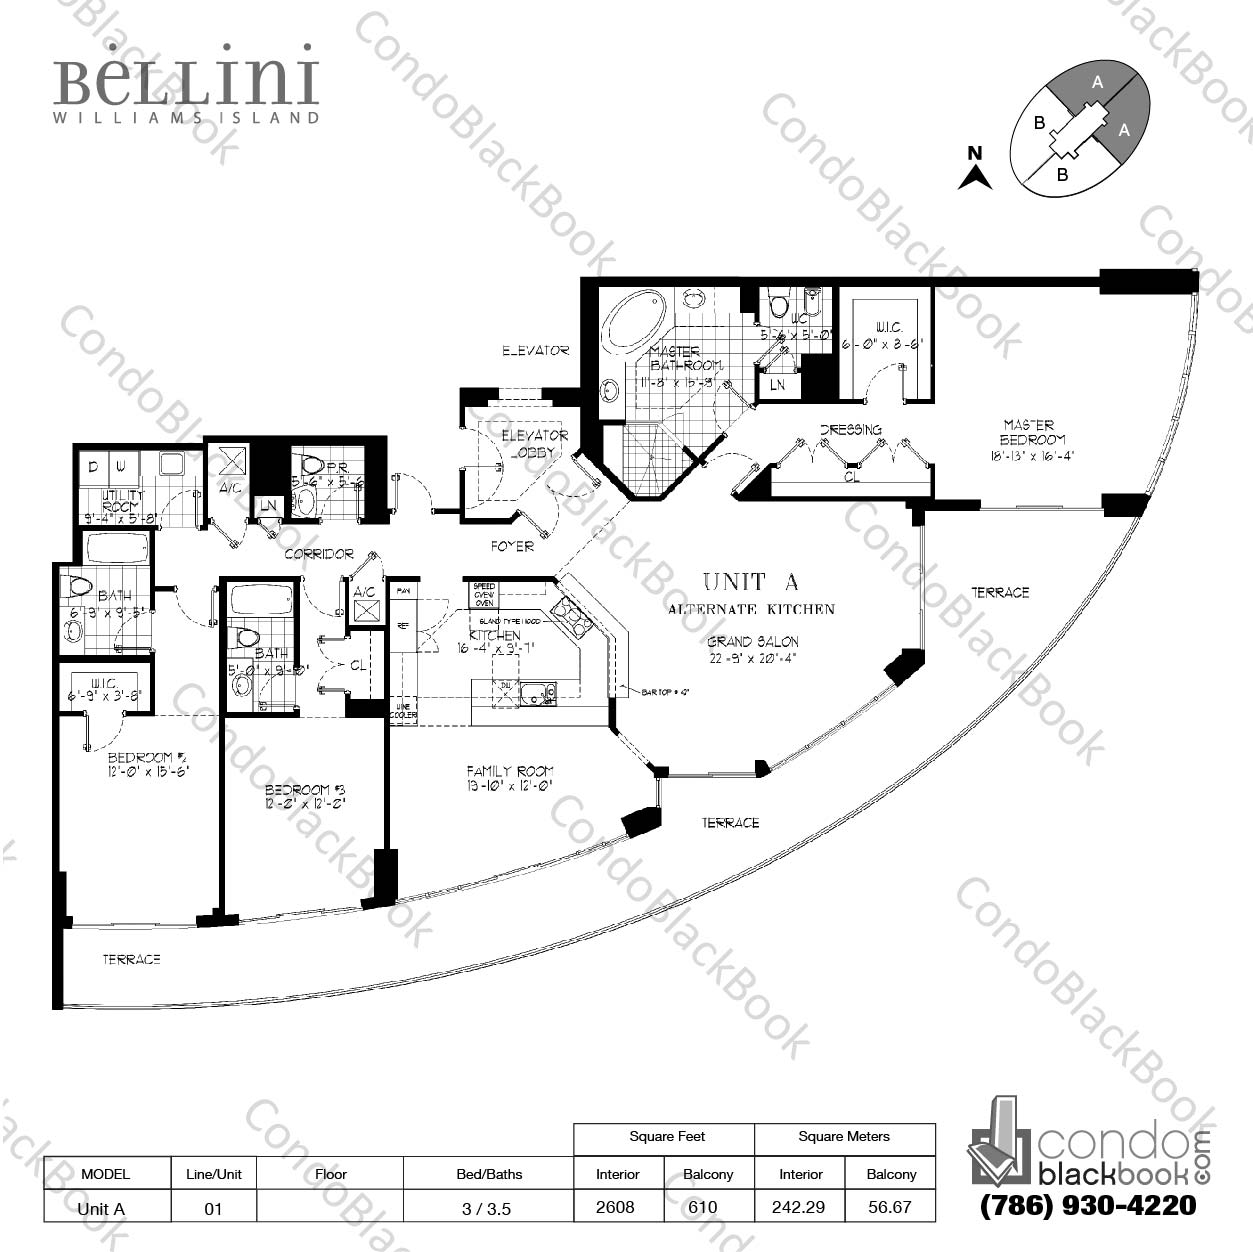 Floor plan for Bellini Williams Island  Aventura, model Unit A, line 01, 3 / 3.5 bedrooms, 2608 sq ft